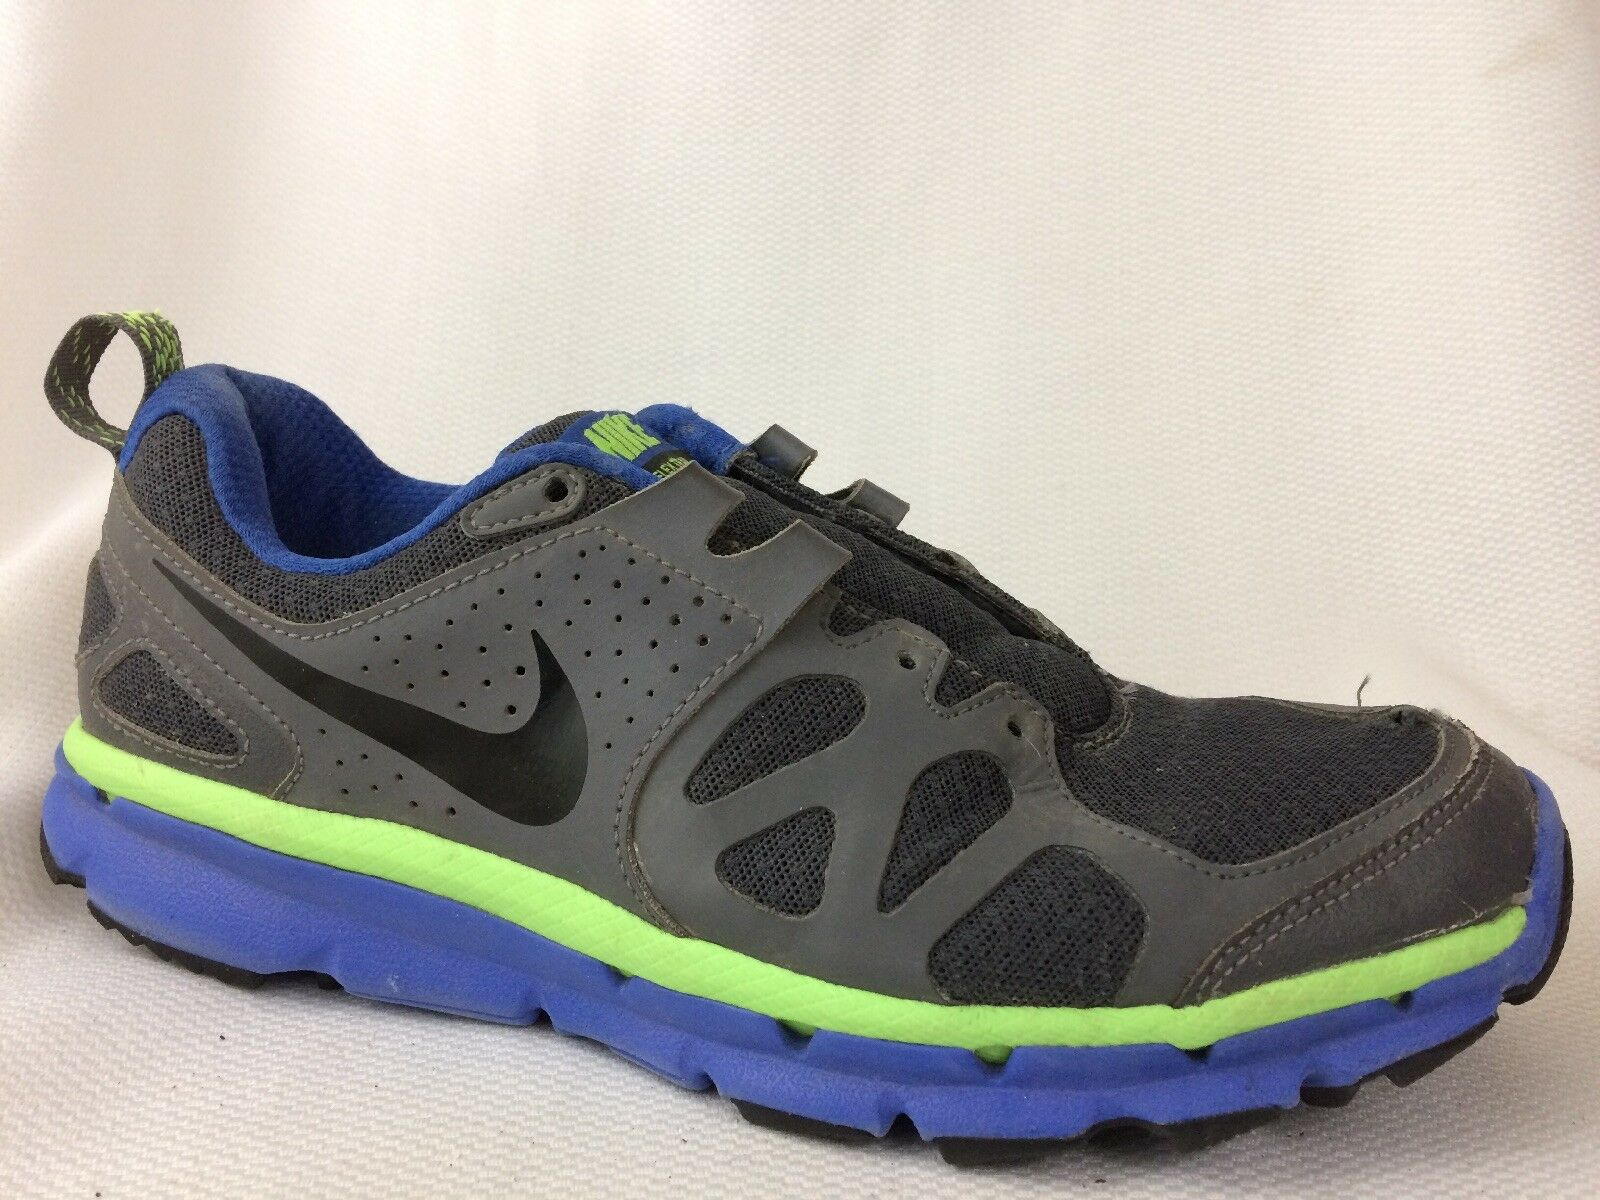 Nike 7.5 Flex Trail 538548-003 Grey Black Green Blue Mens 7.5 Nike M Sneaker Running Shoe 0eebad